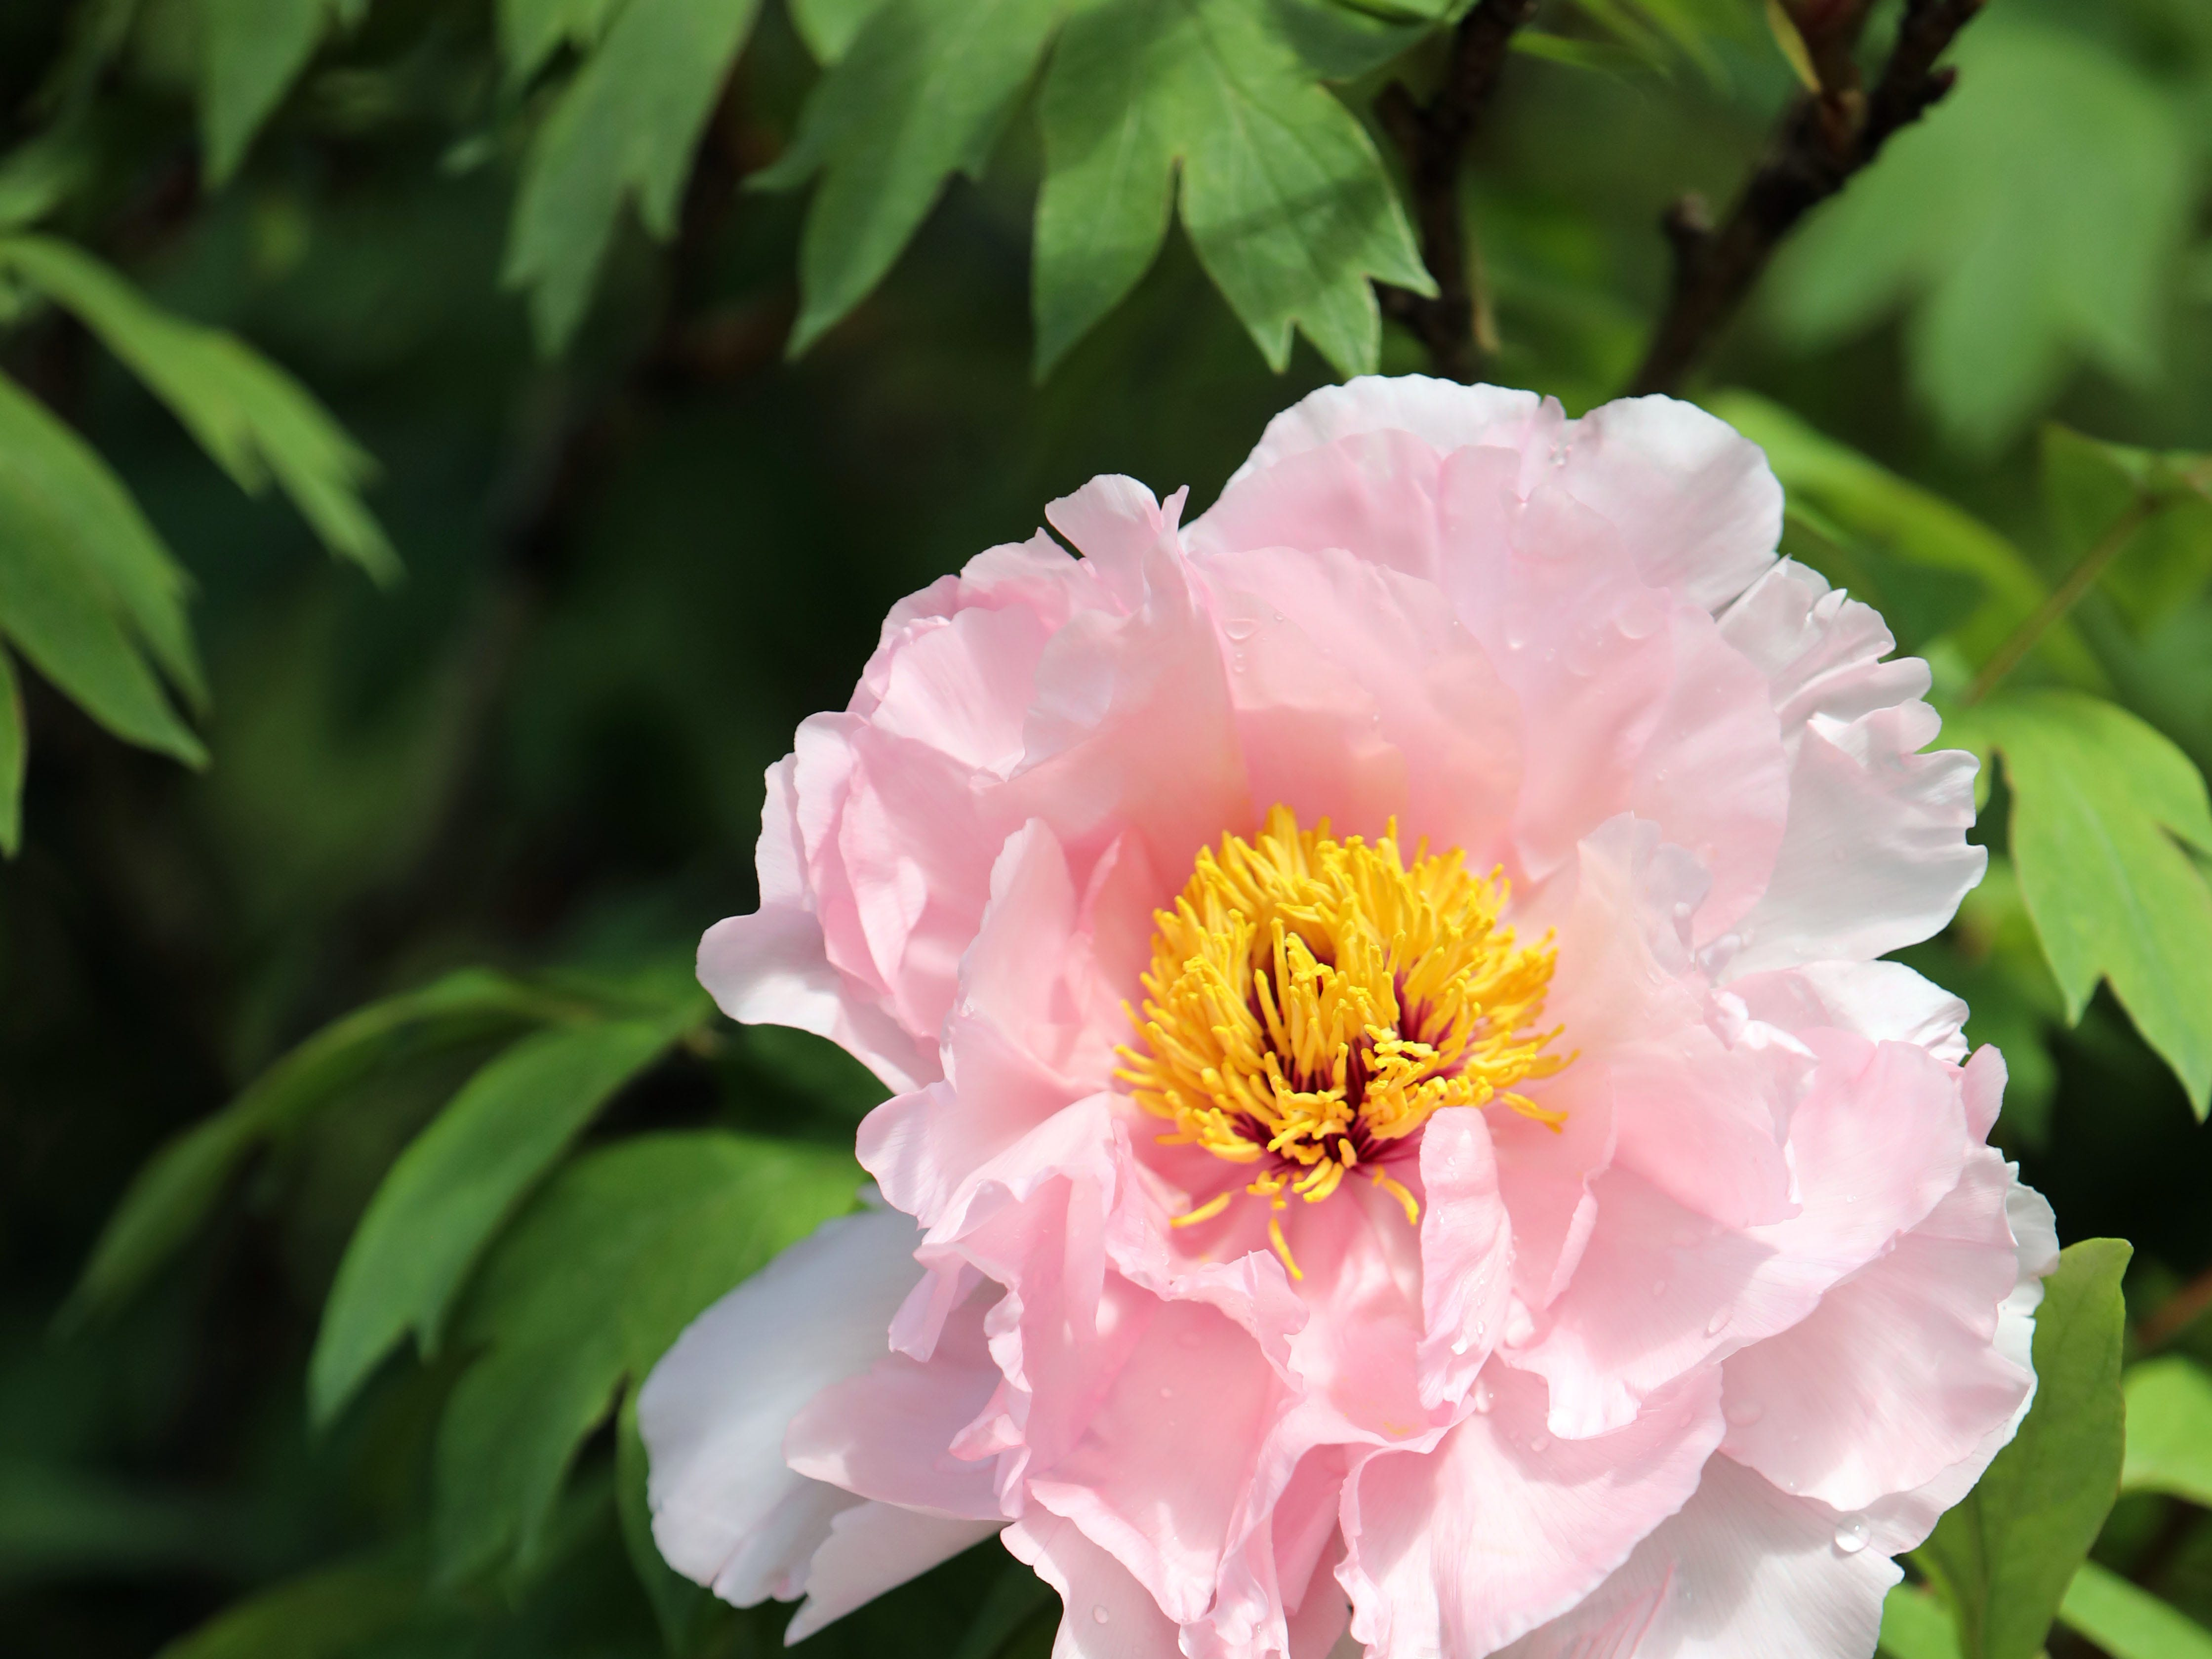 Peonies in bloom, which will last about 7-10 more days, at Rockefeller State Park Preserve in Pleasantville May 15, 2019. The 500 tree plants were a gift from Yatsuka Cho, a small town in Japan, to the Friends of the Rockefeller State Park Preserve to help unite the two countries after September 11.